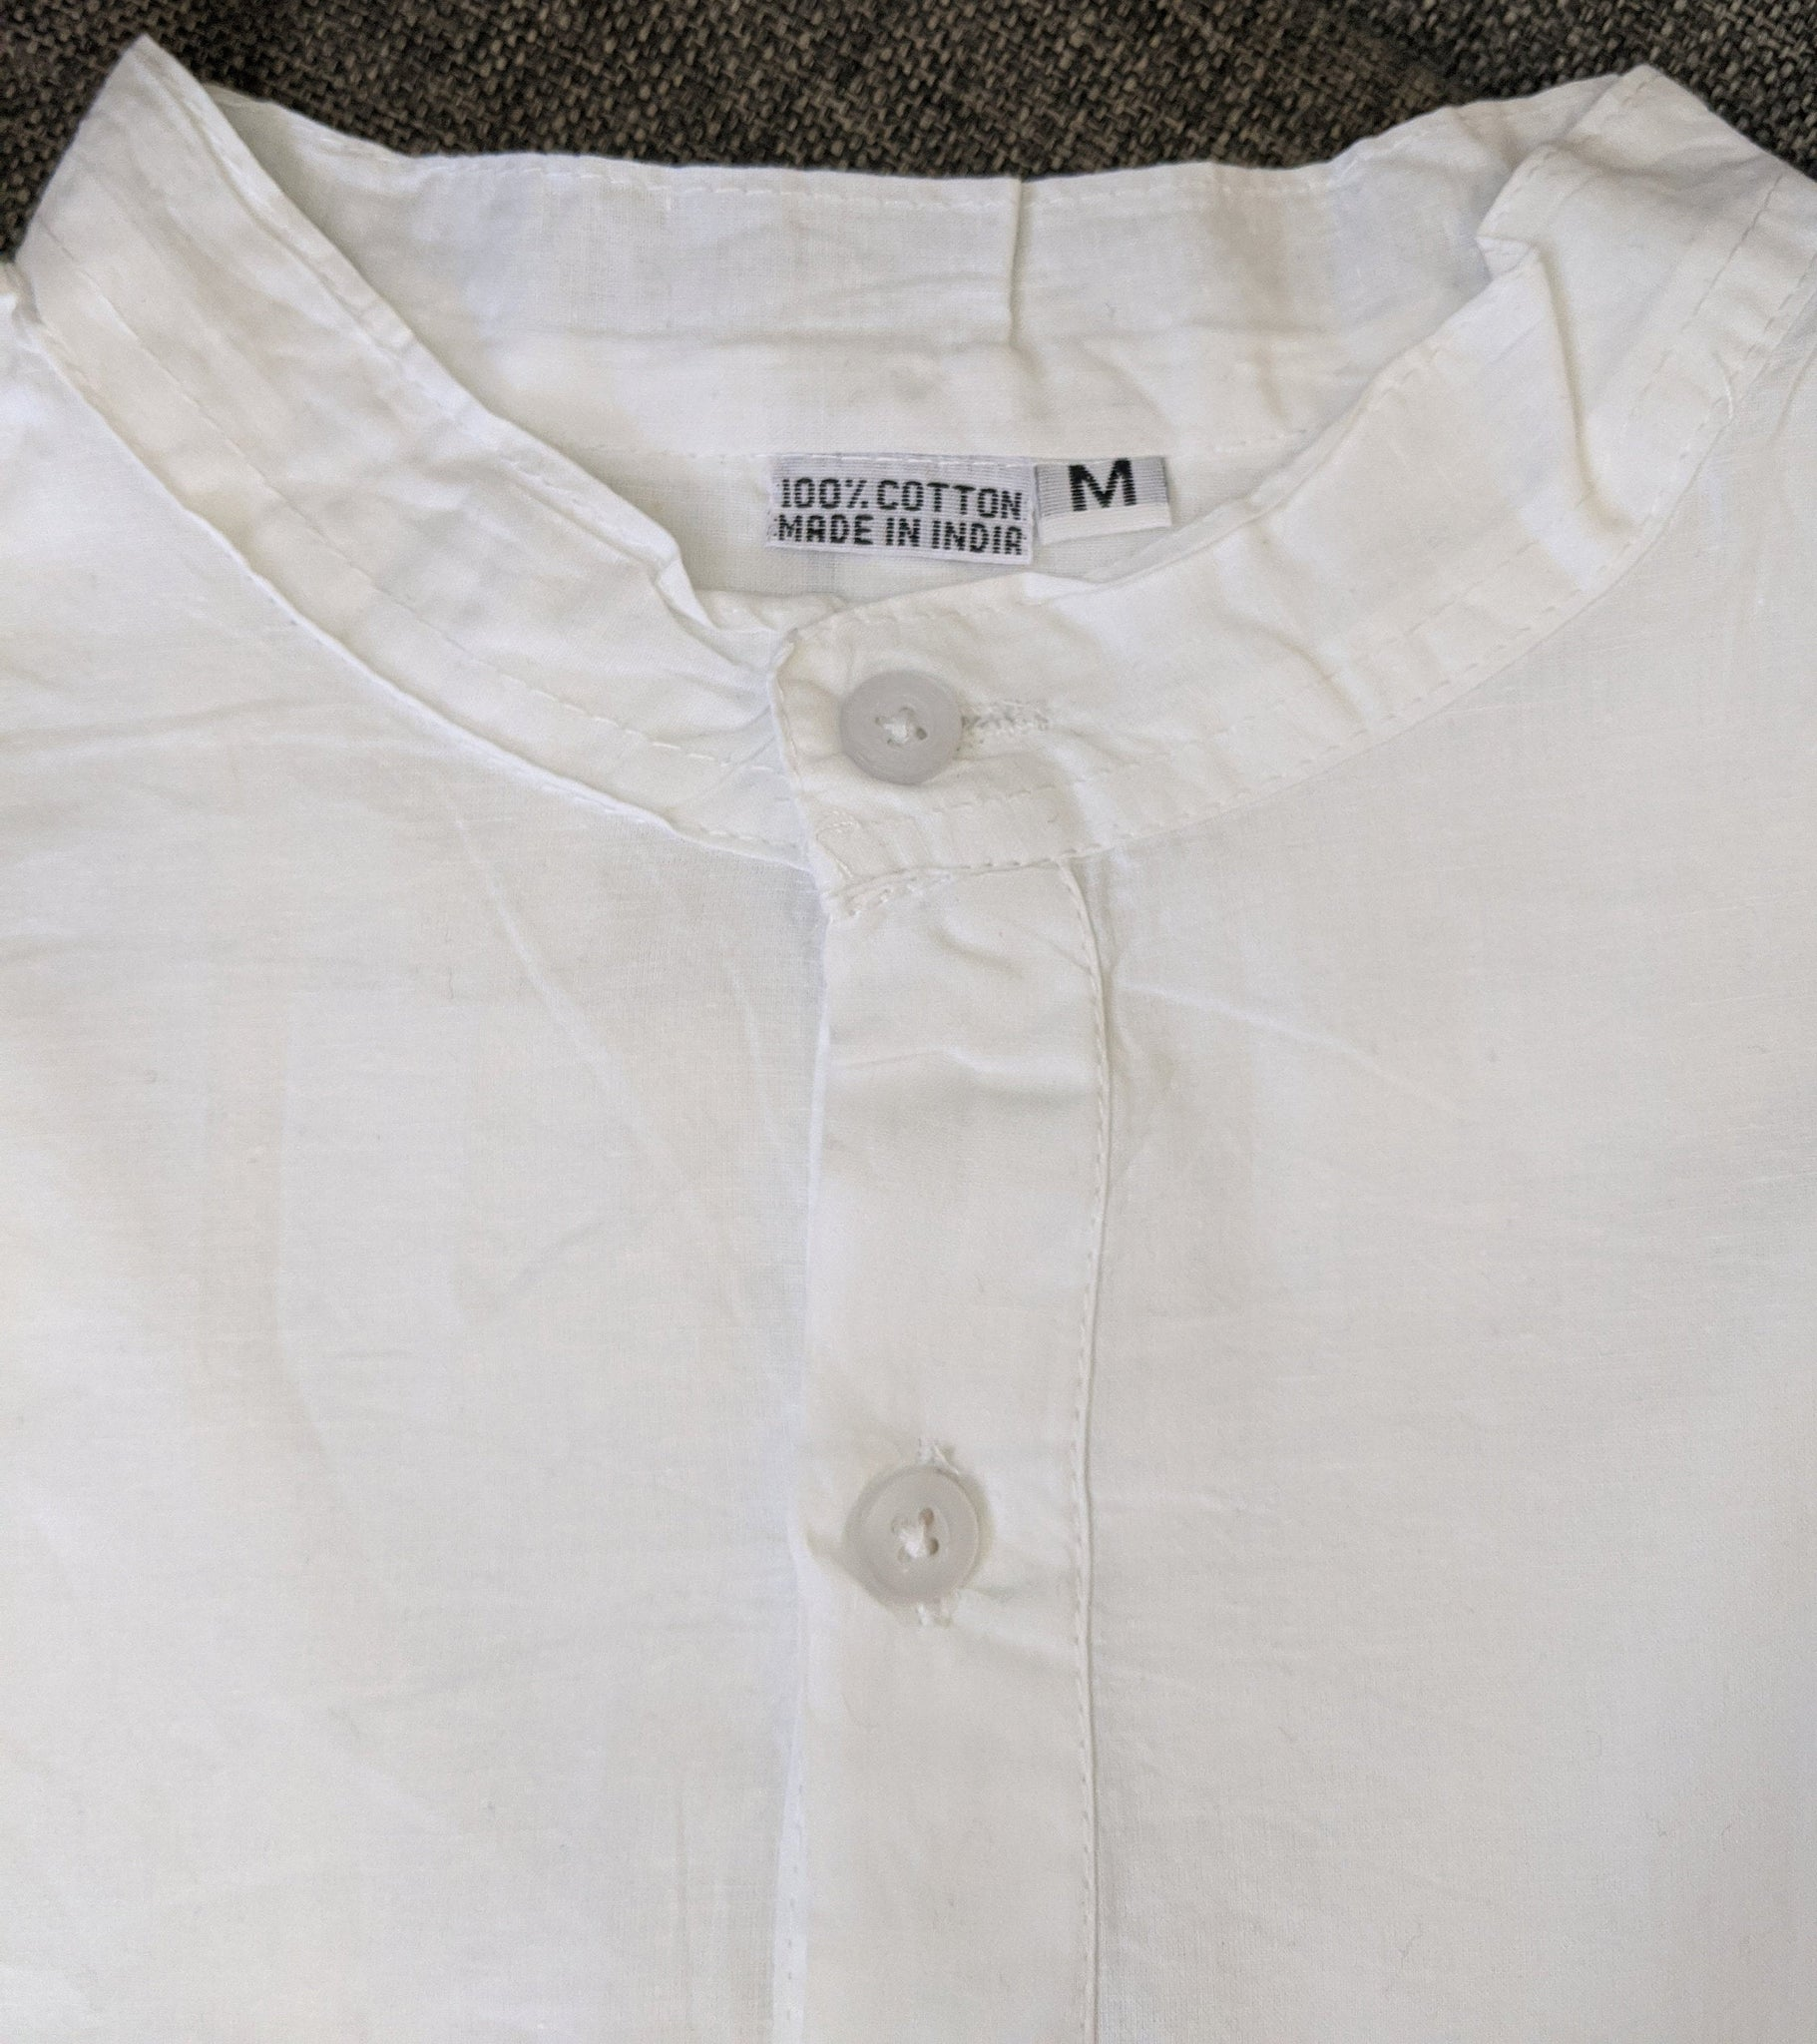 White Cotton Classic Shirt, Tunic, Kurta, Blouse, Band collar for woman or man